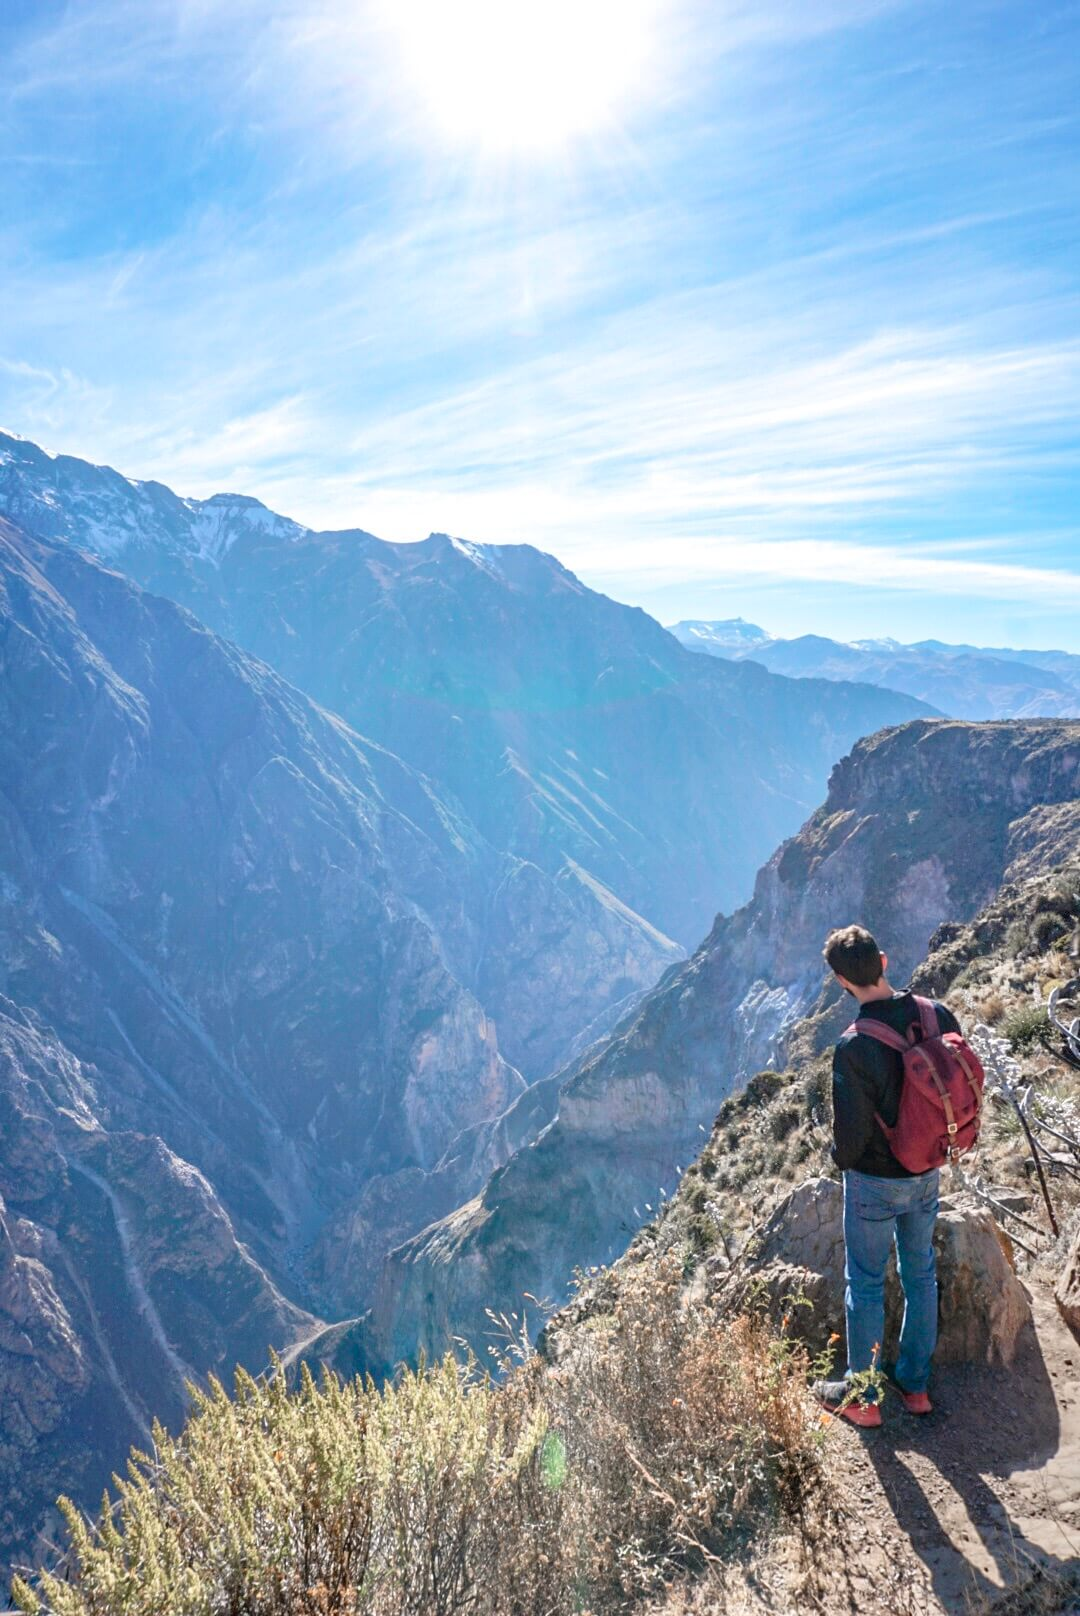 Visiter canyon del colca arequipa